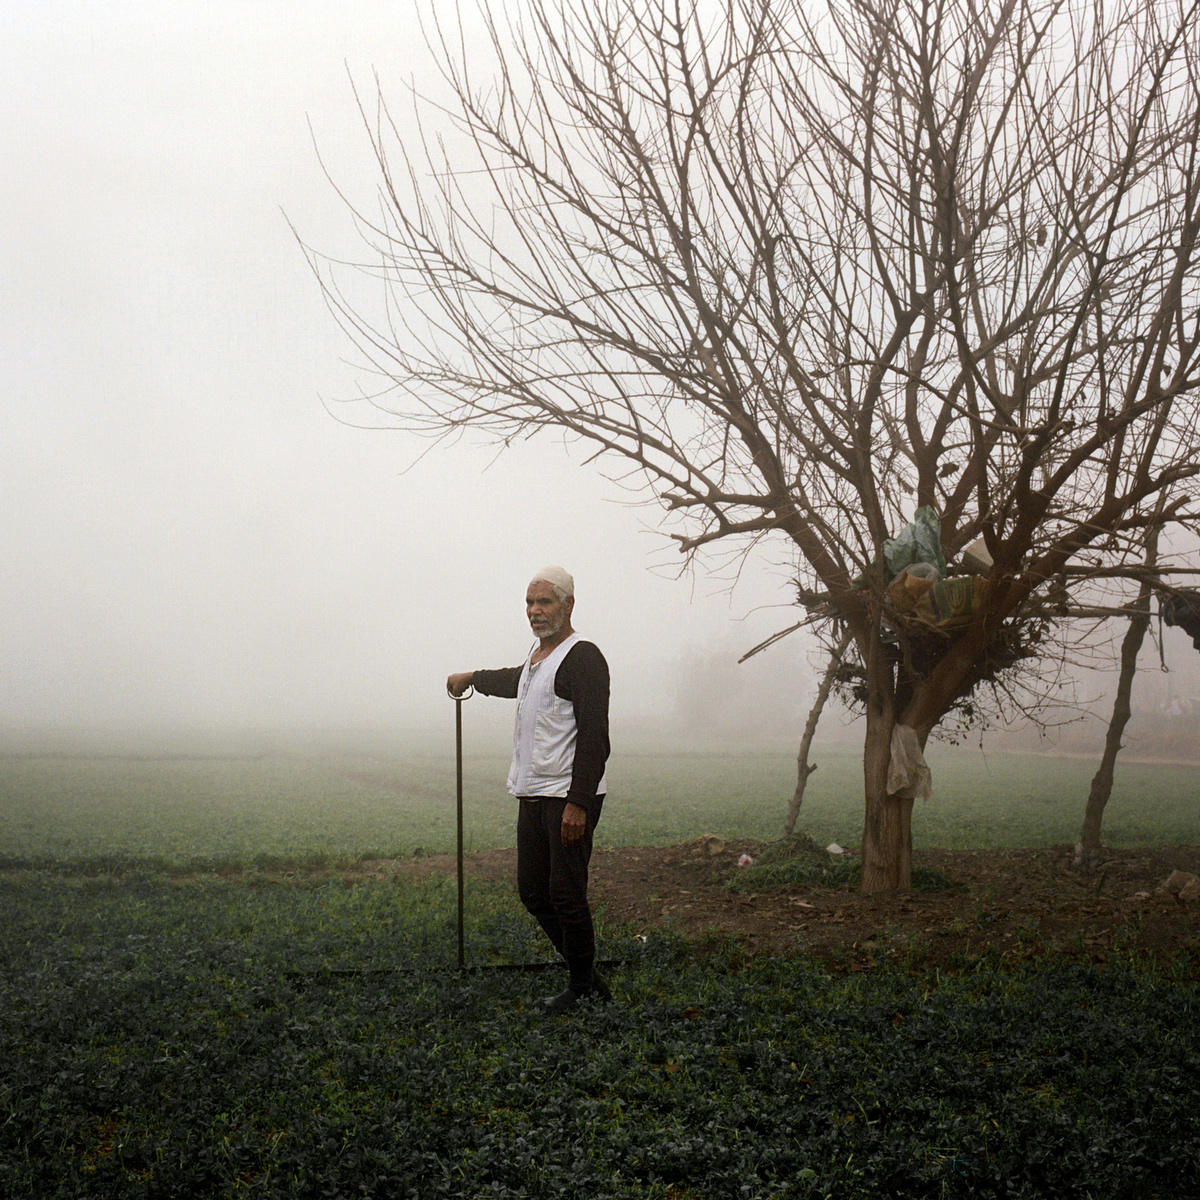 Alone, Alsayed Nasir, 67, manually grazed his field at sunrise.